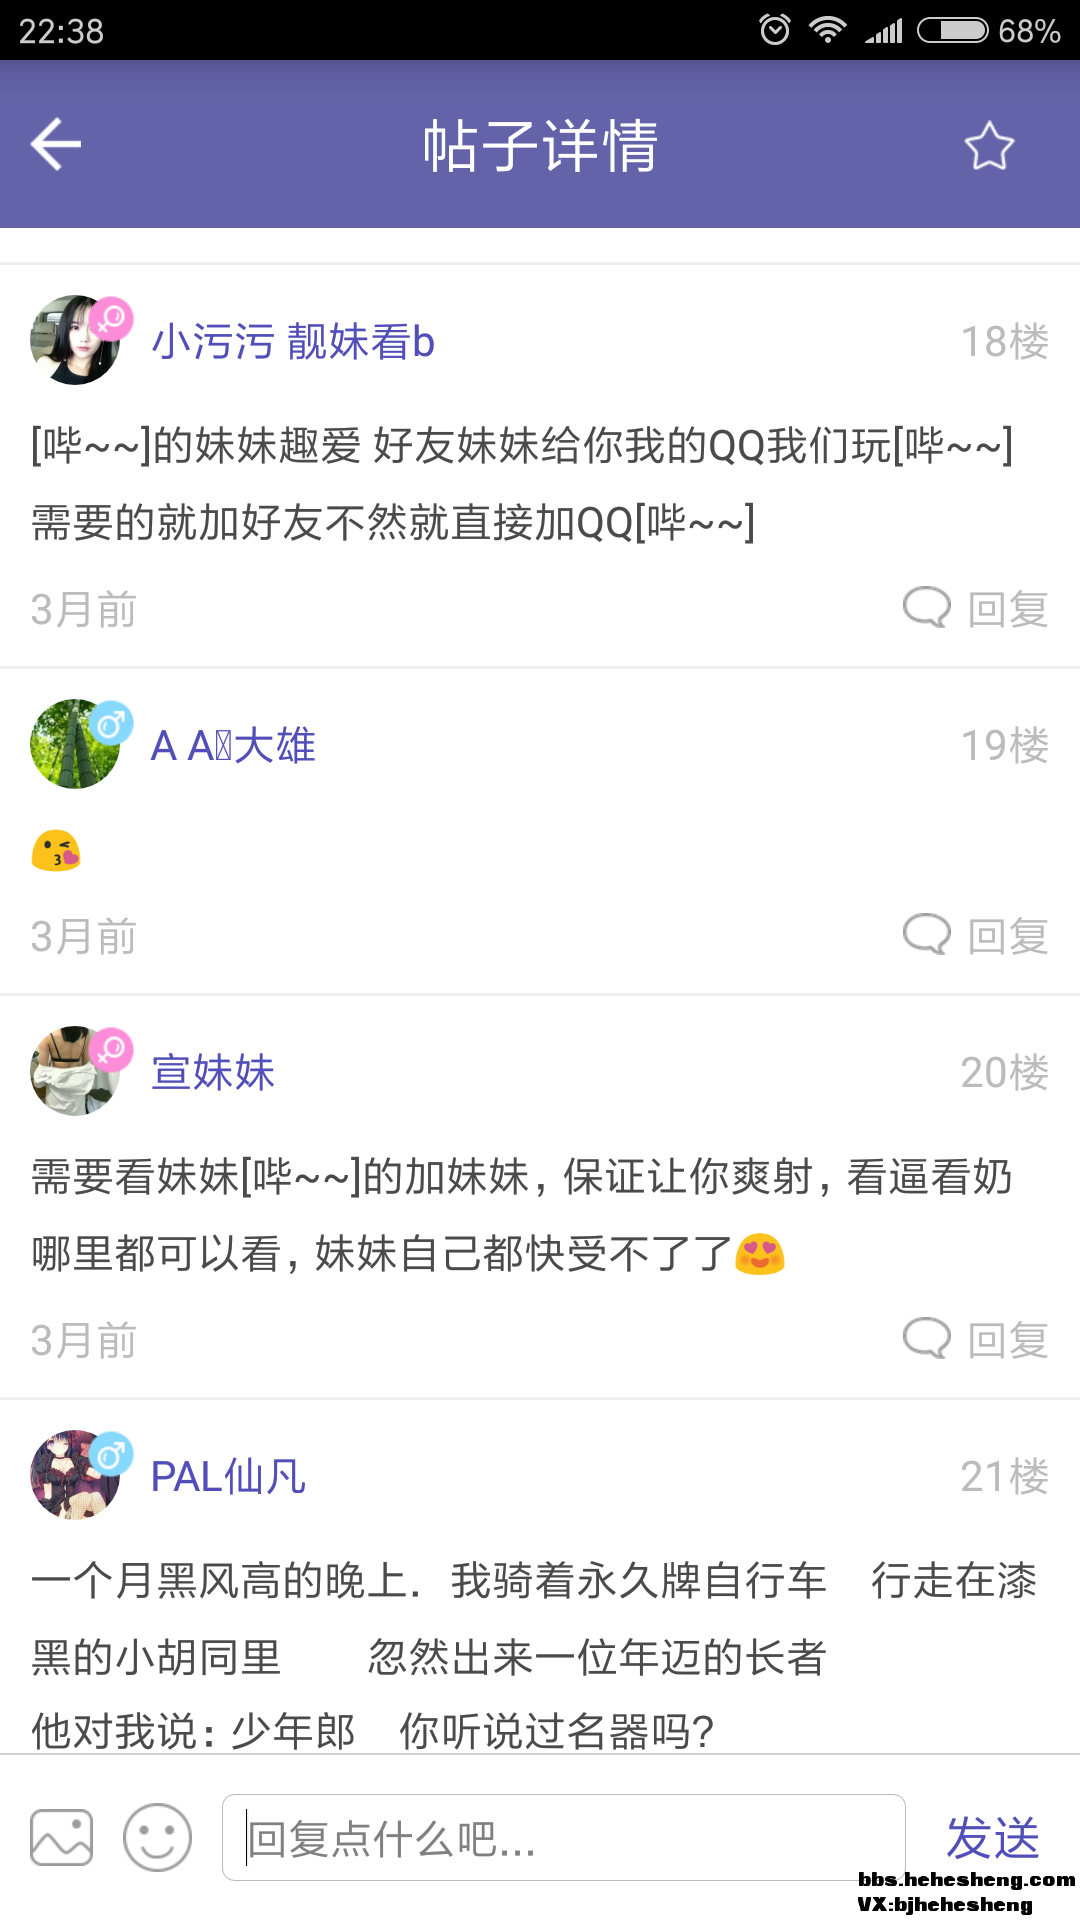 Screenshot_2018-01-19-22-38-59-990_com.mengxia.lo.png